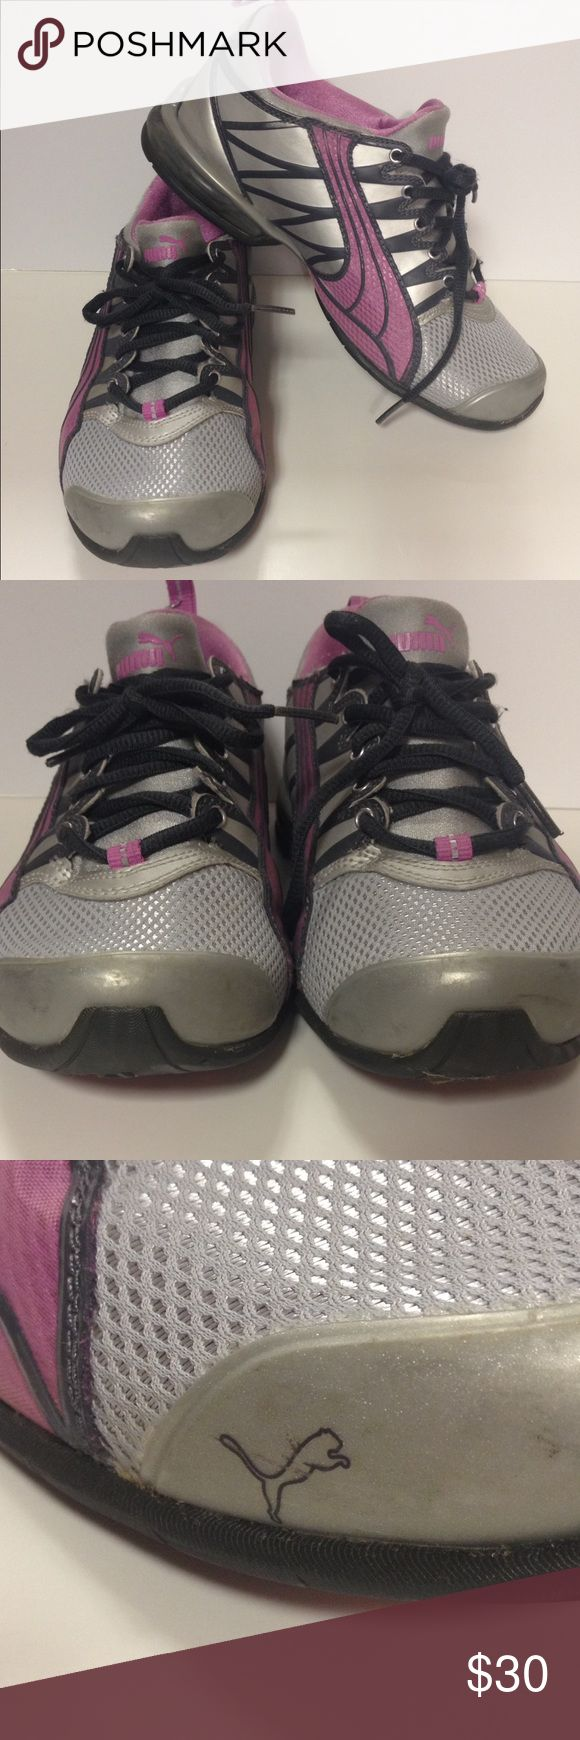 Puma tennis shoes gray pink size 6 1/2 Good clean used condition.  Size 6 1/2 Puma Shoes Athletic Shoes